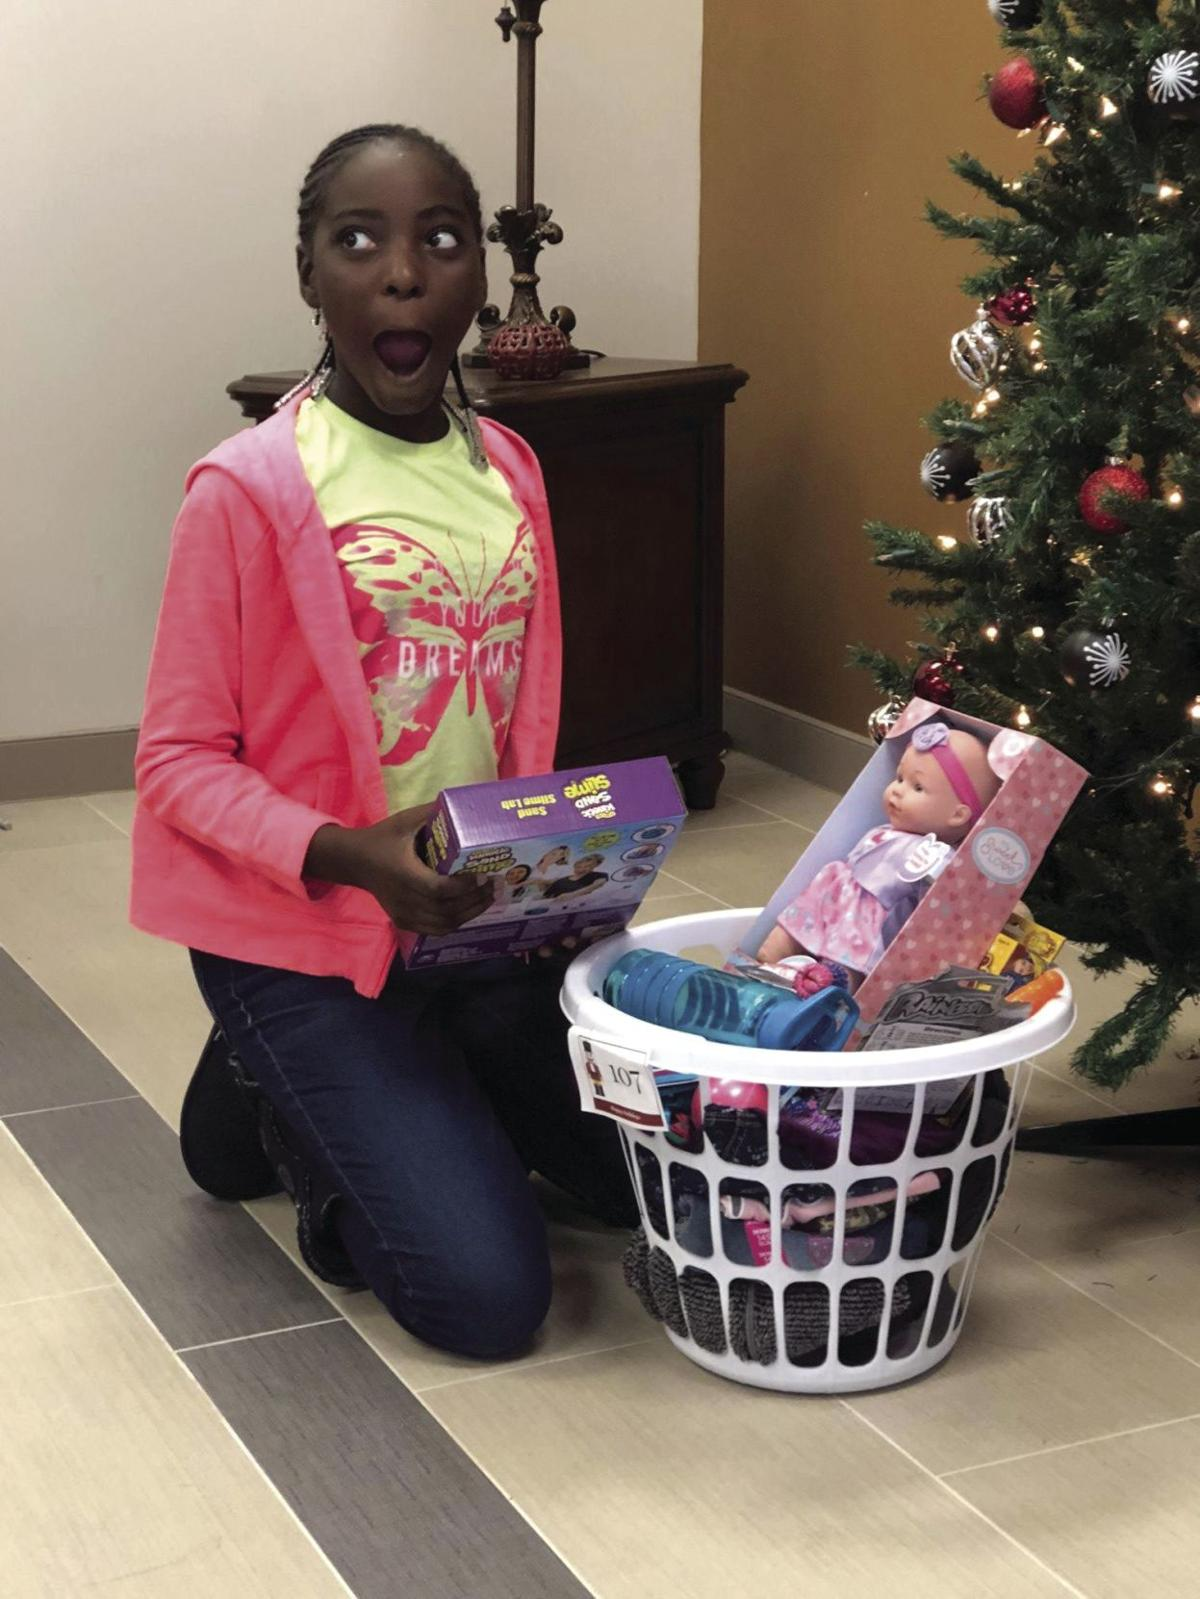 One of the children was excited about her basket of gifts at Y Christmas last year.